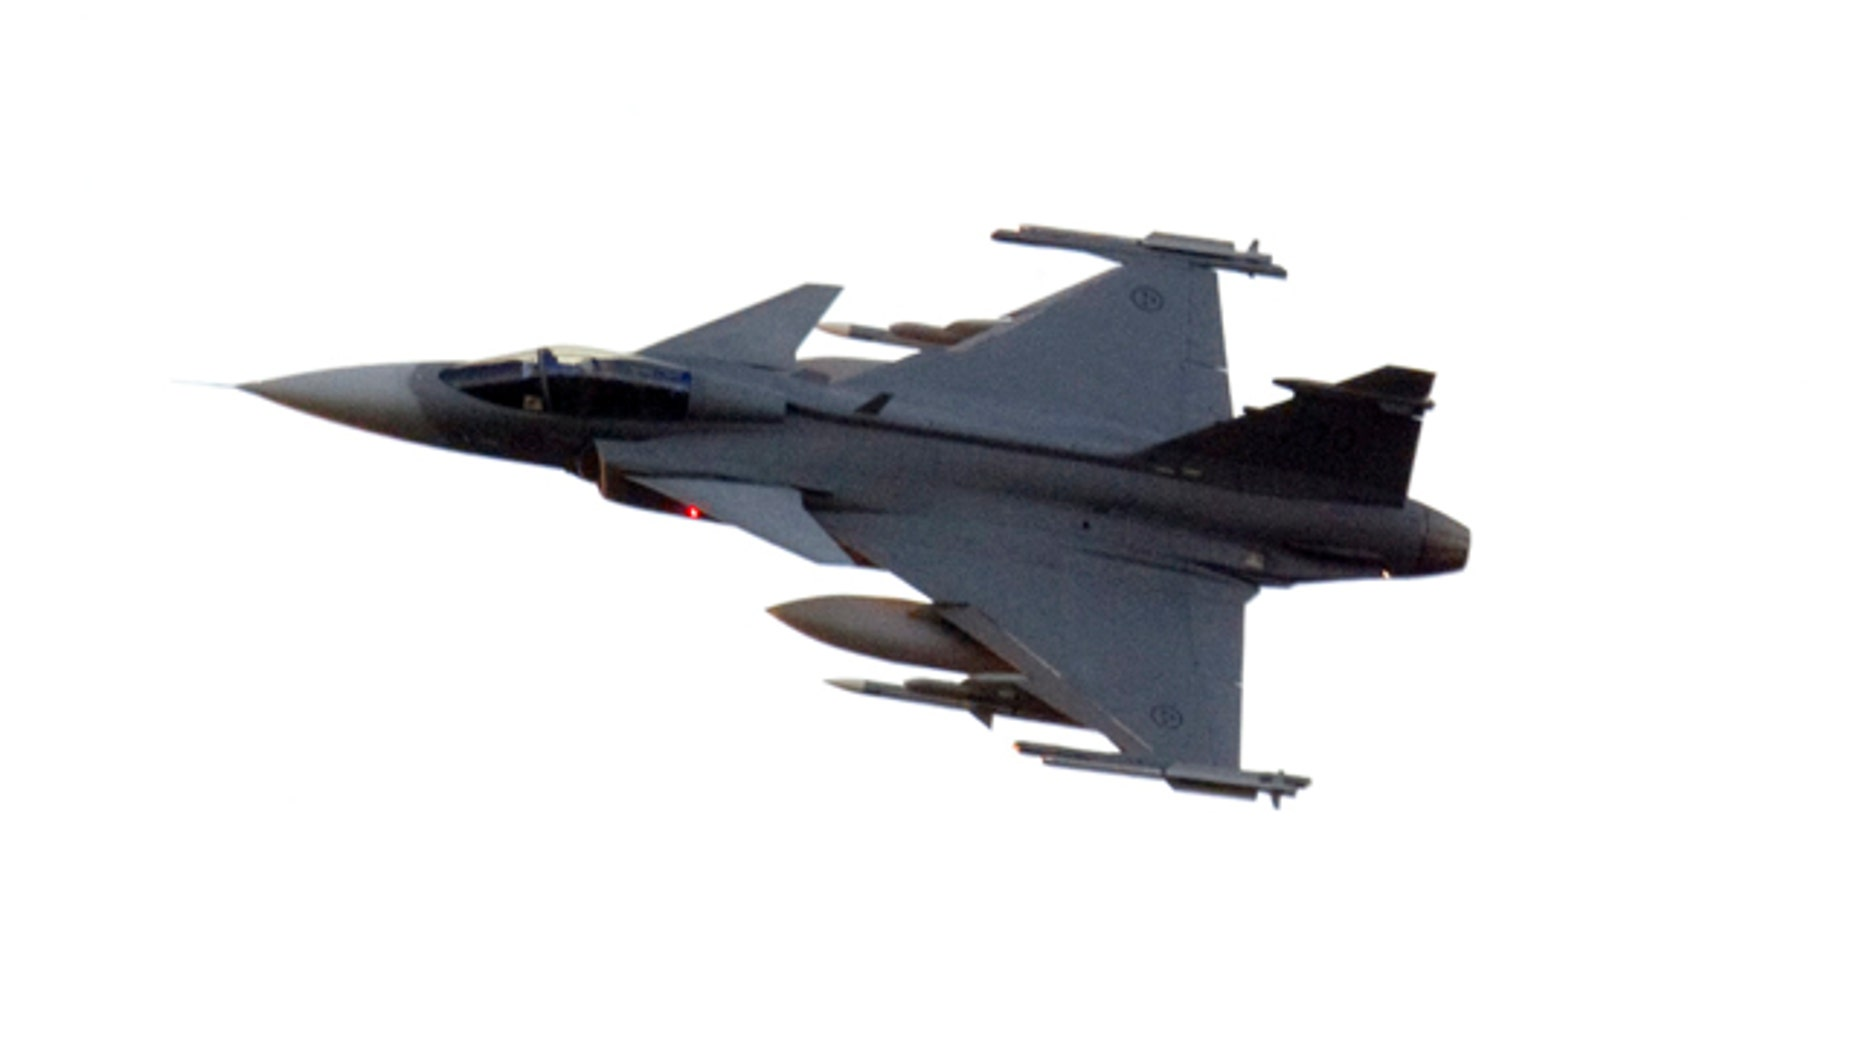 A Swedish JAS 39C Gripen fighter jet in a 2011 file photo.